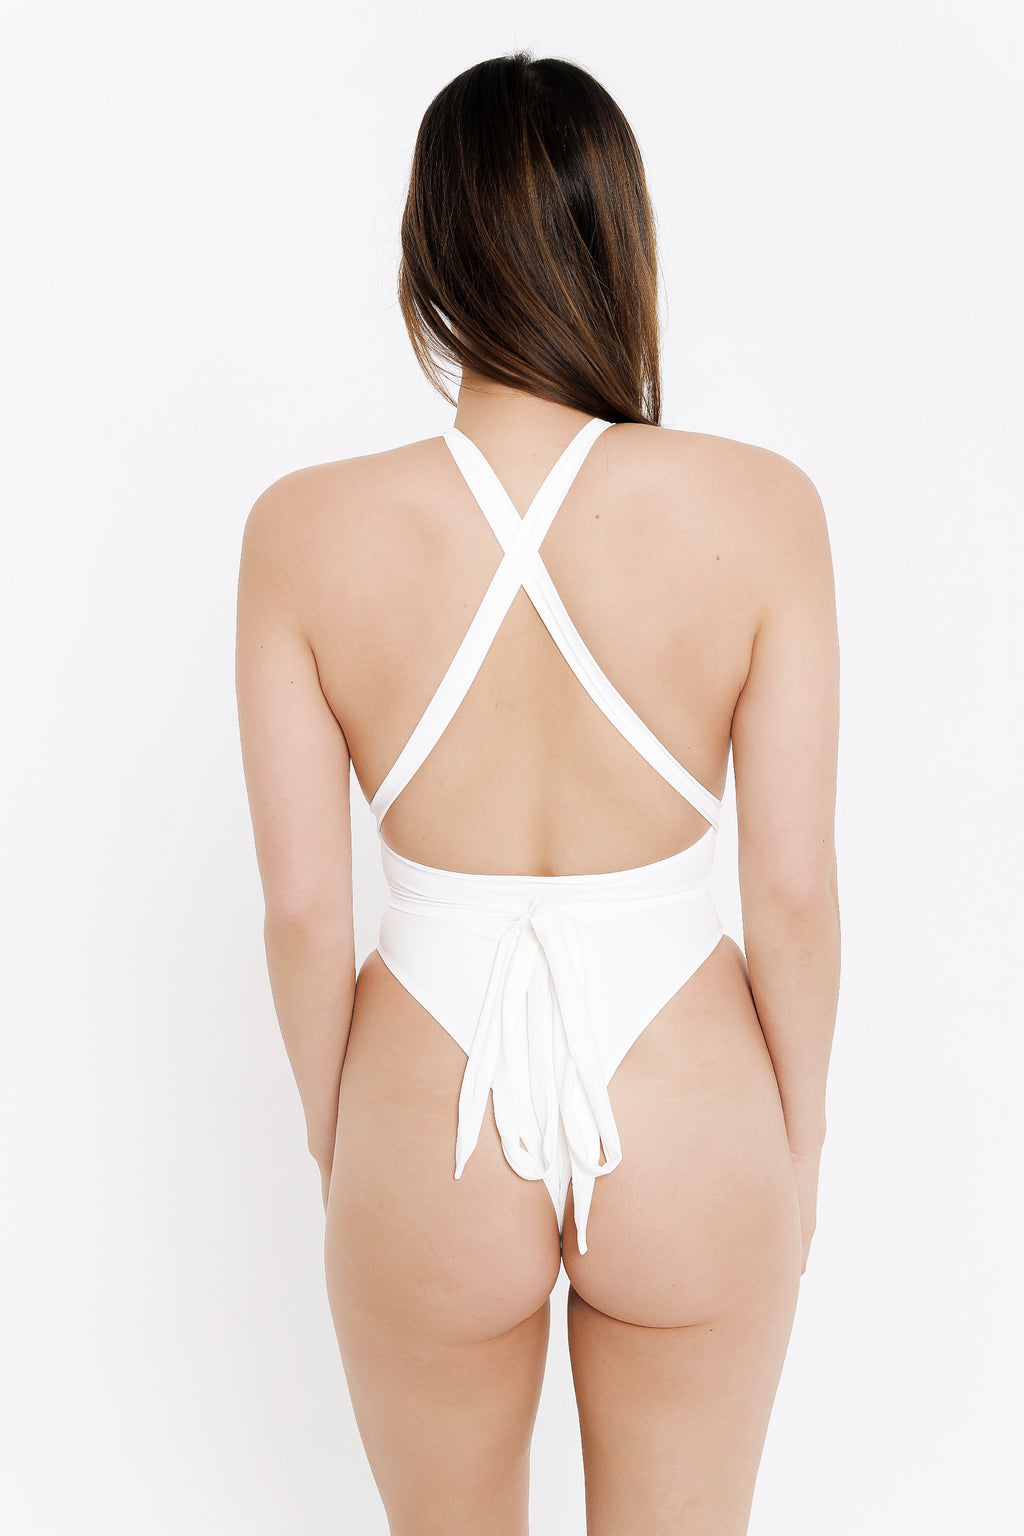 SARAH ONE PIECE - WHITE